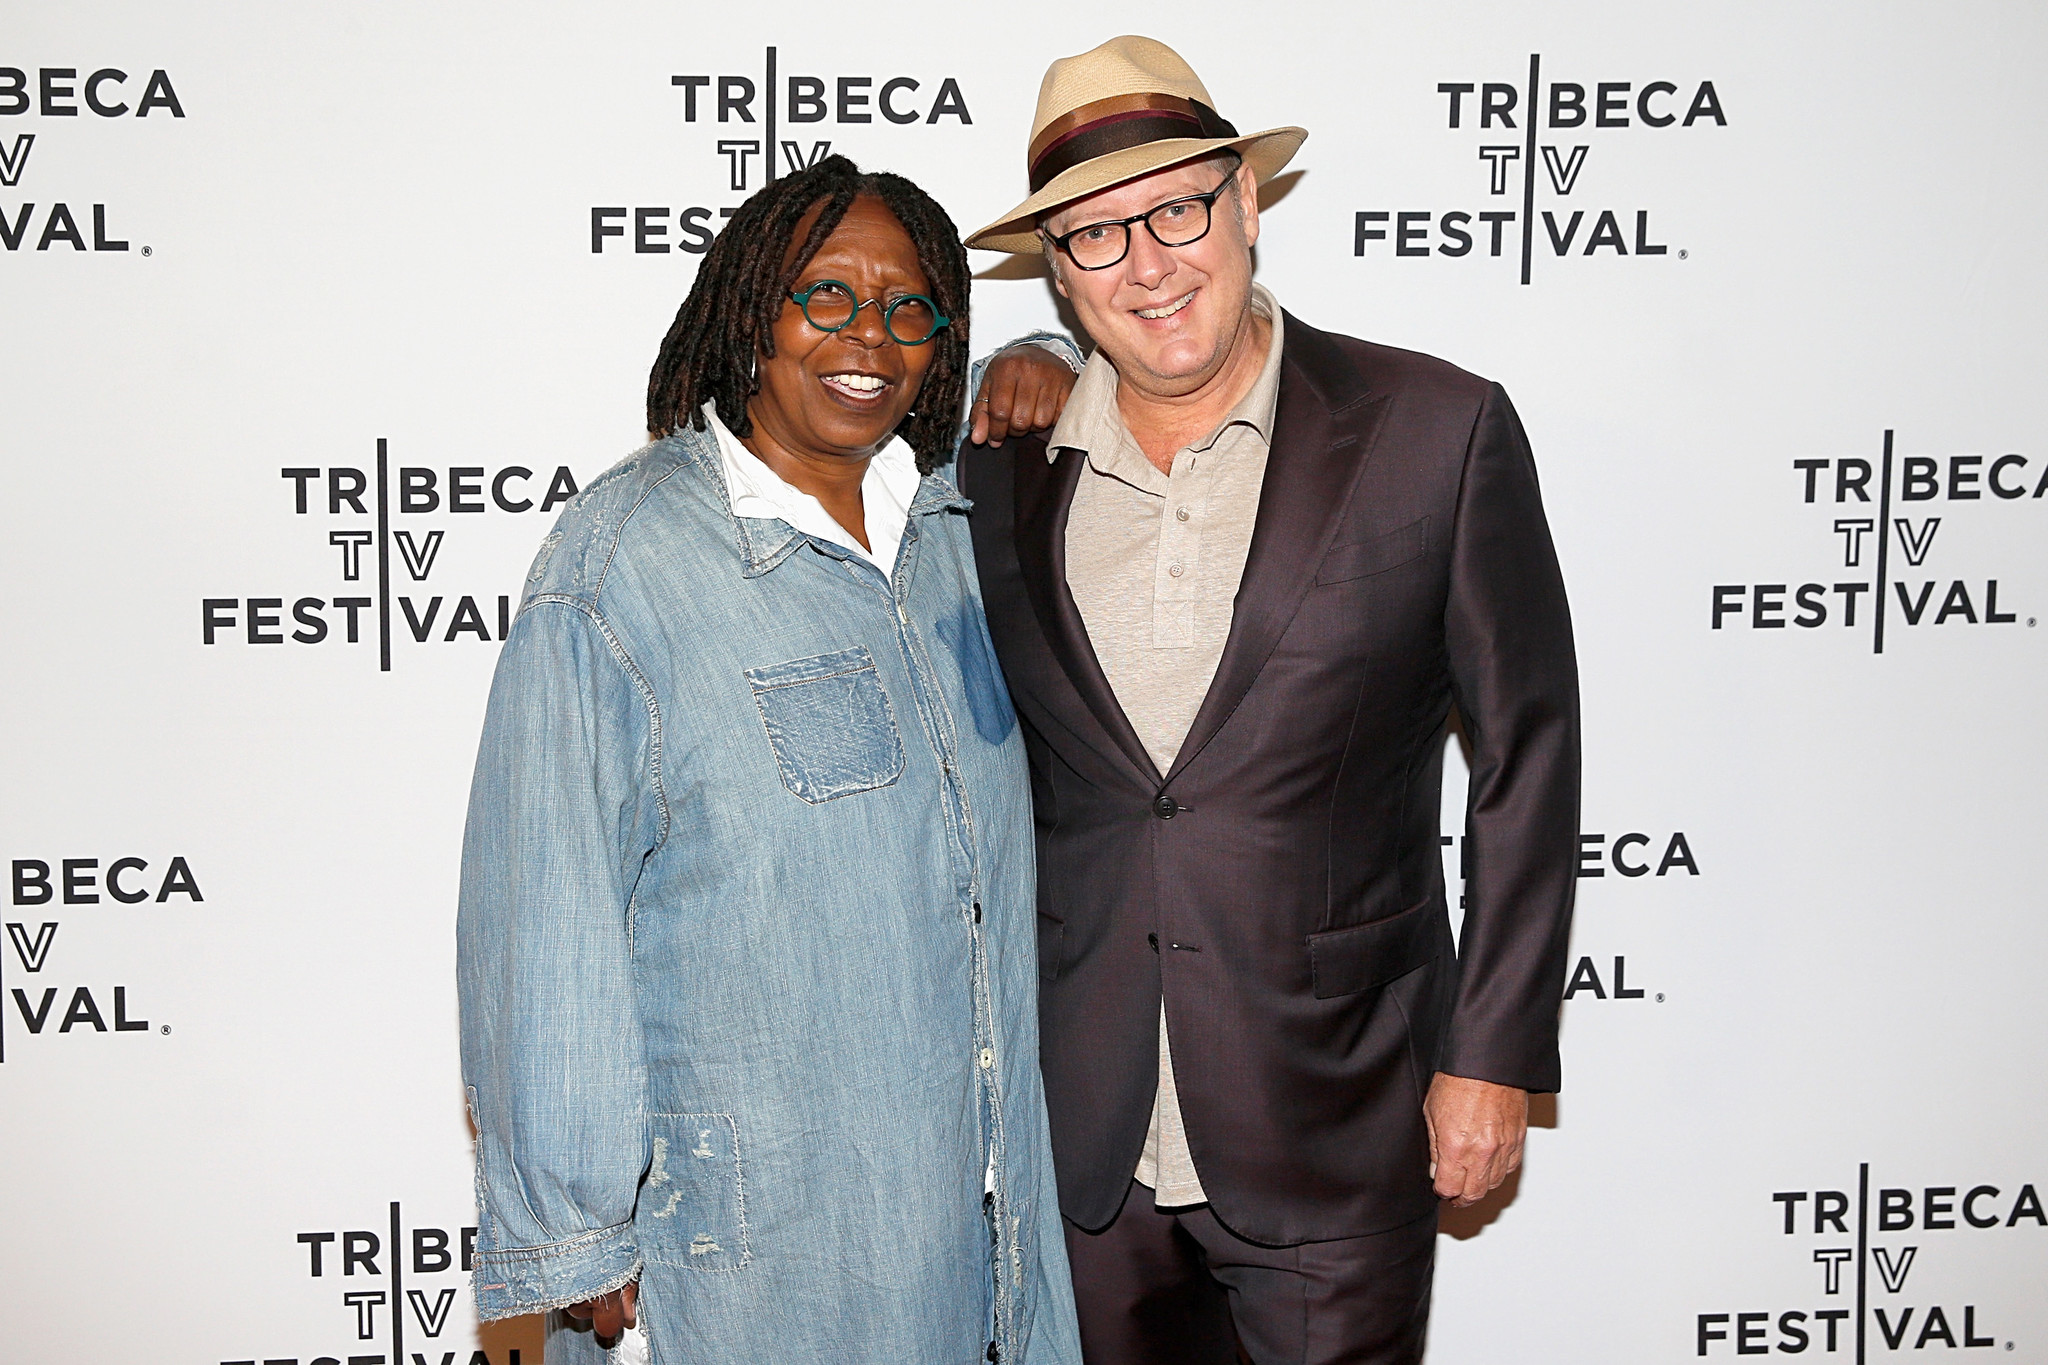 James Spader tells Whoopi Goldberg that 'Avengers' role was 'extremely challenging'